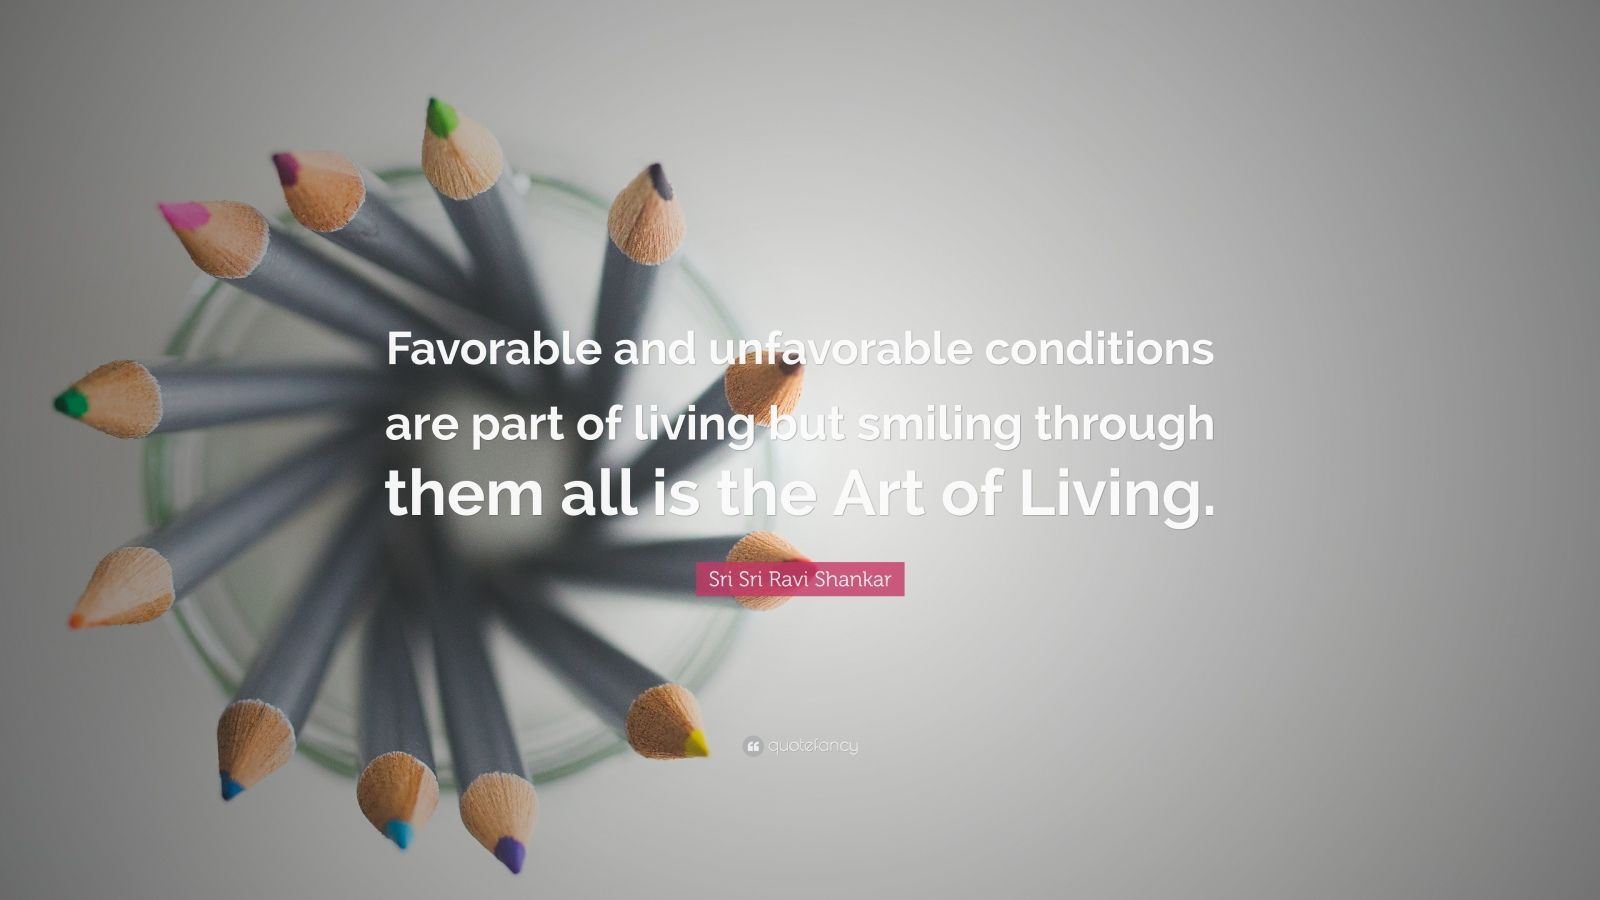 """Sri Sri Ravi Shankar Quote: """"Favorable and unfavorable conditions are part of living but smiling through them all is the Art of Living."""""""